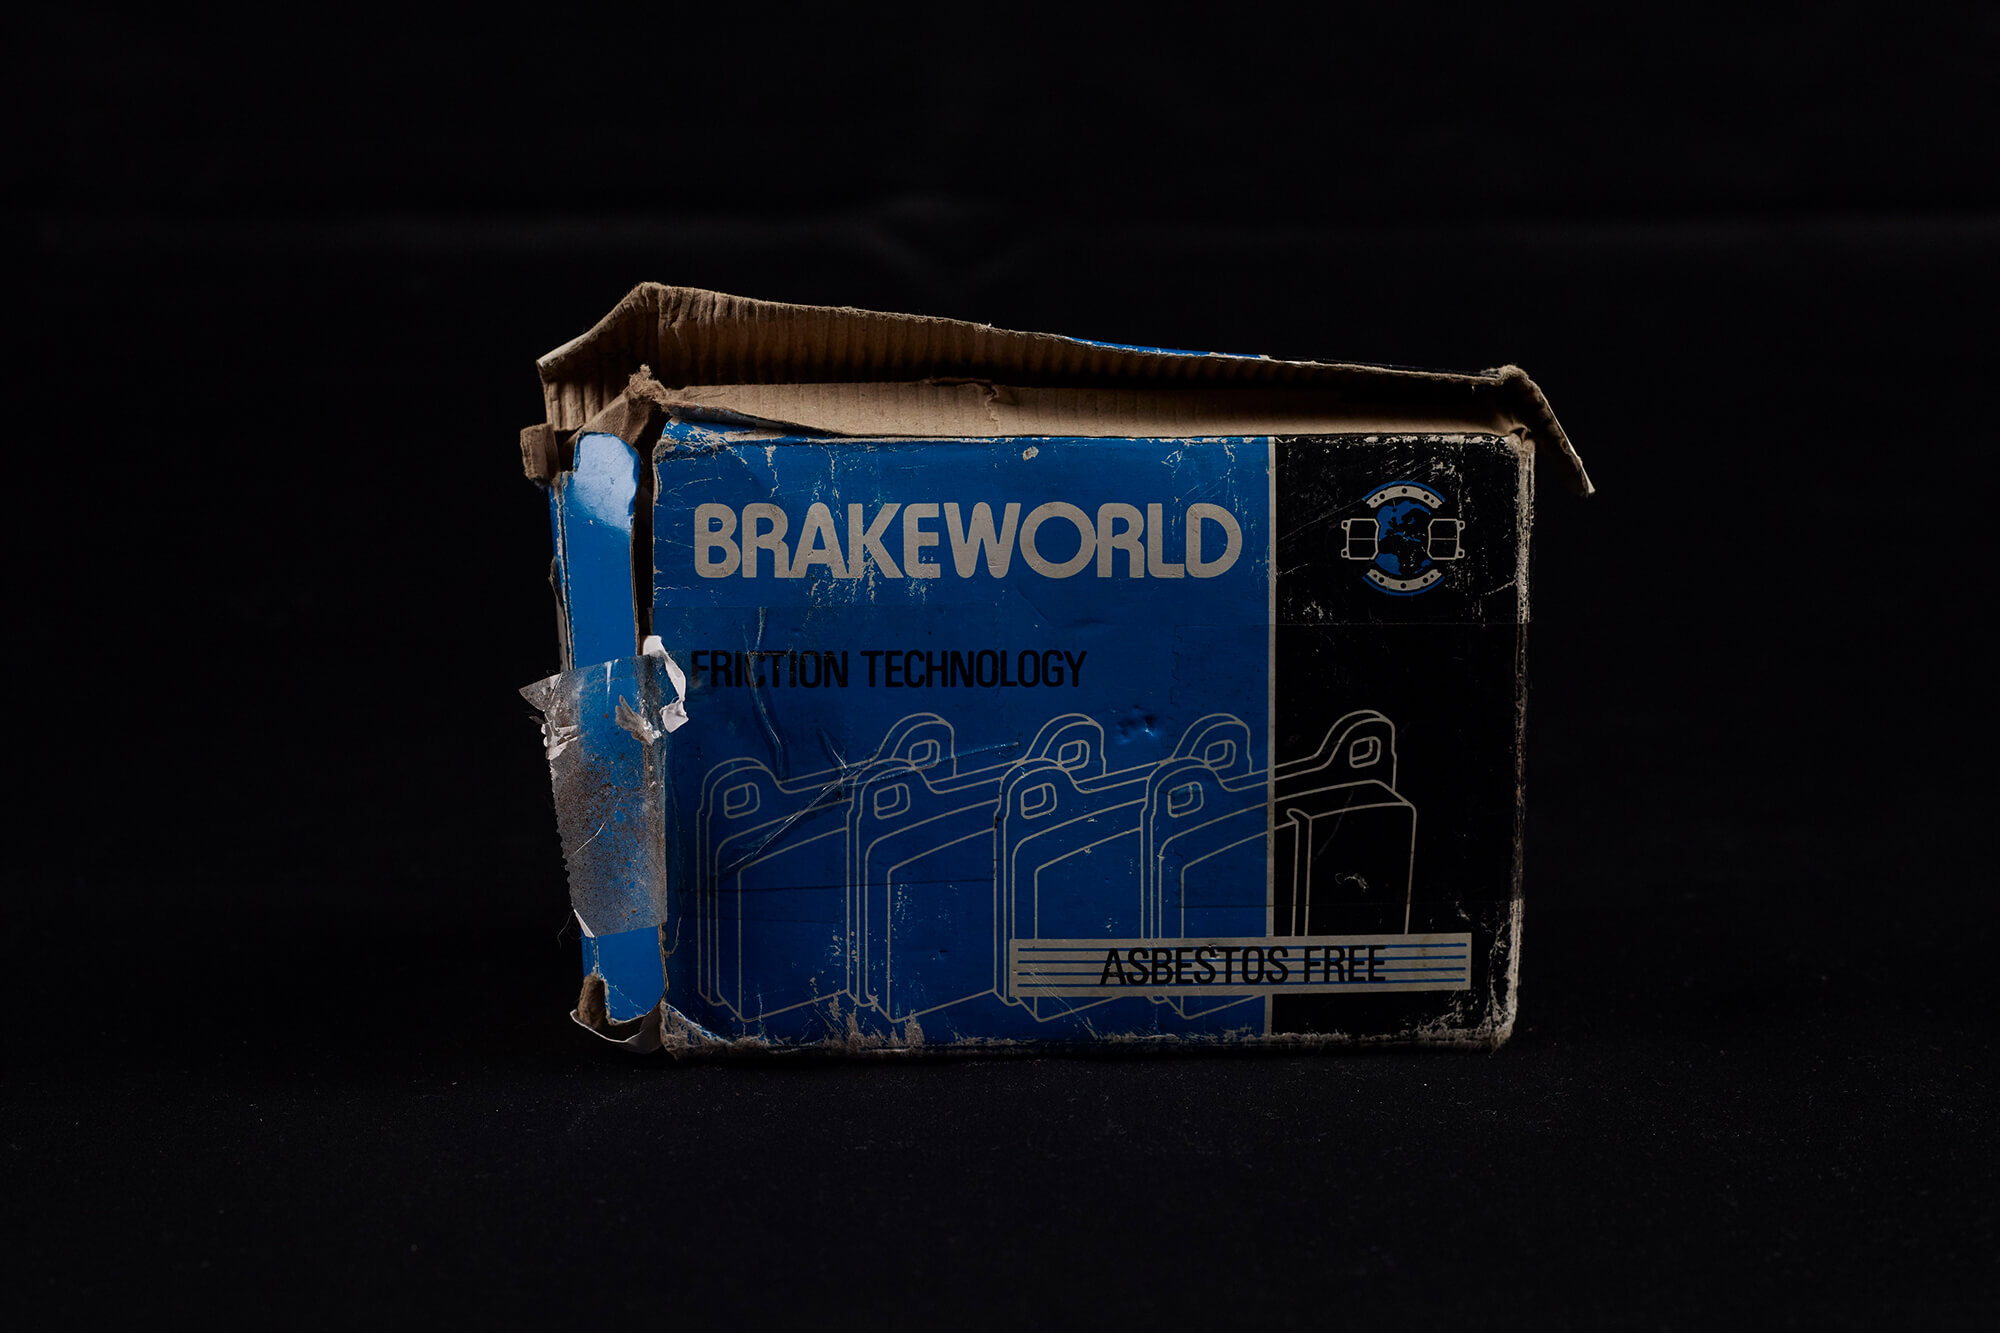 Close up image of a well worn blue and black cardboard box branded 'Brakeworld'